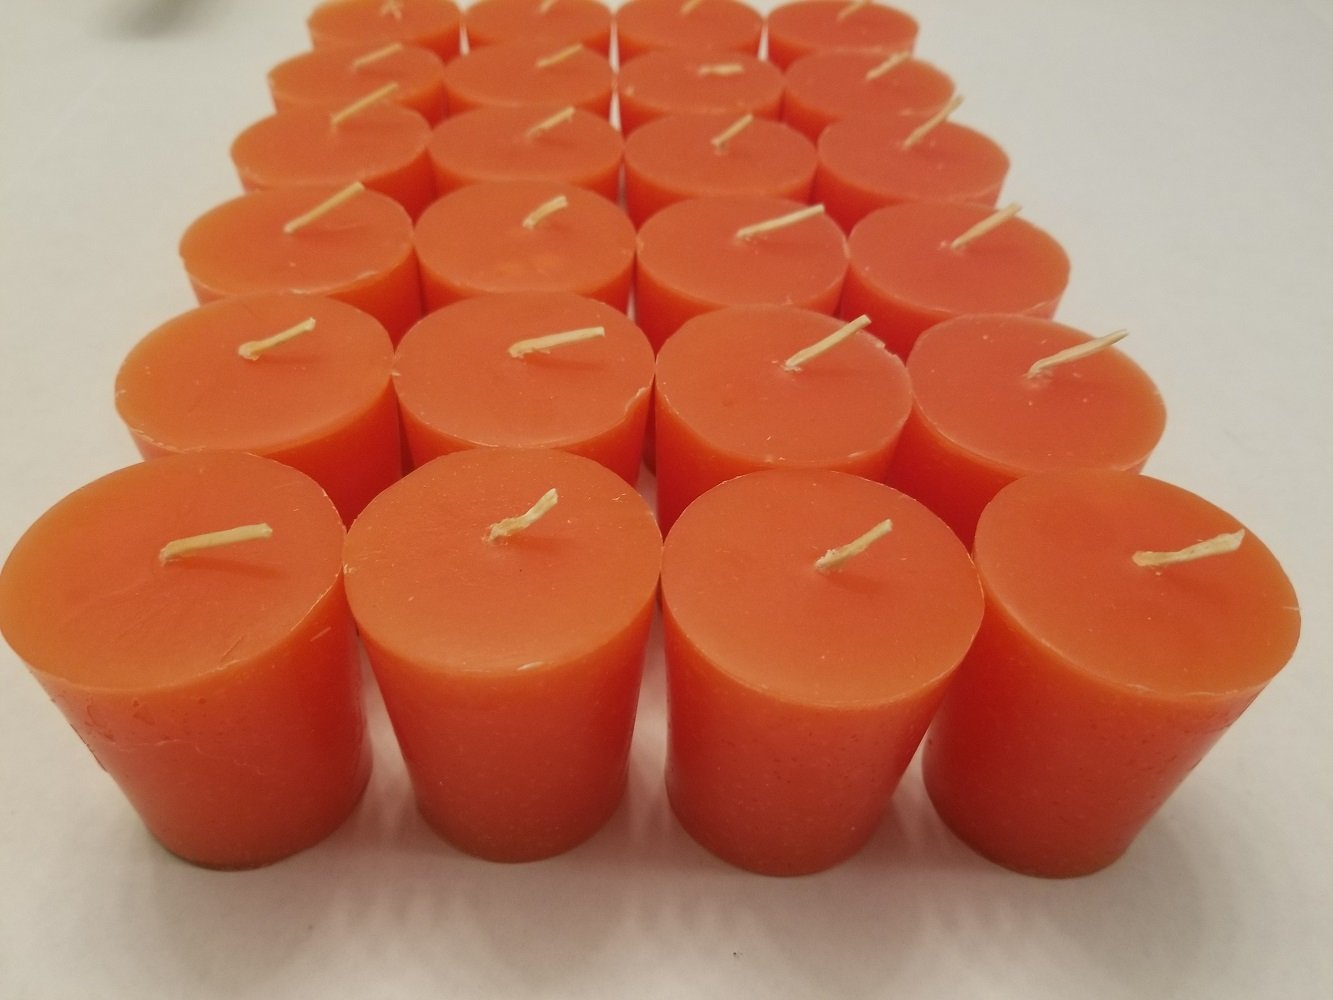 Old Candle Barn 24-Piece Votive Candles - Pumpkin Spice Scented 15 Hour - Perfect Fall Votive